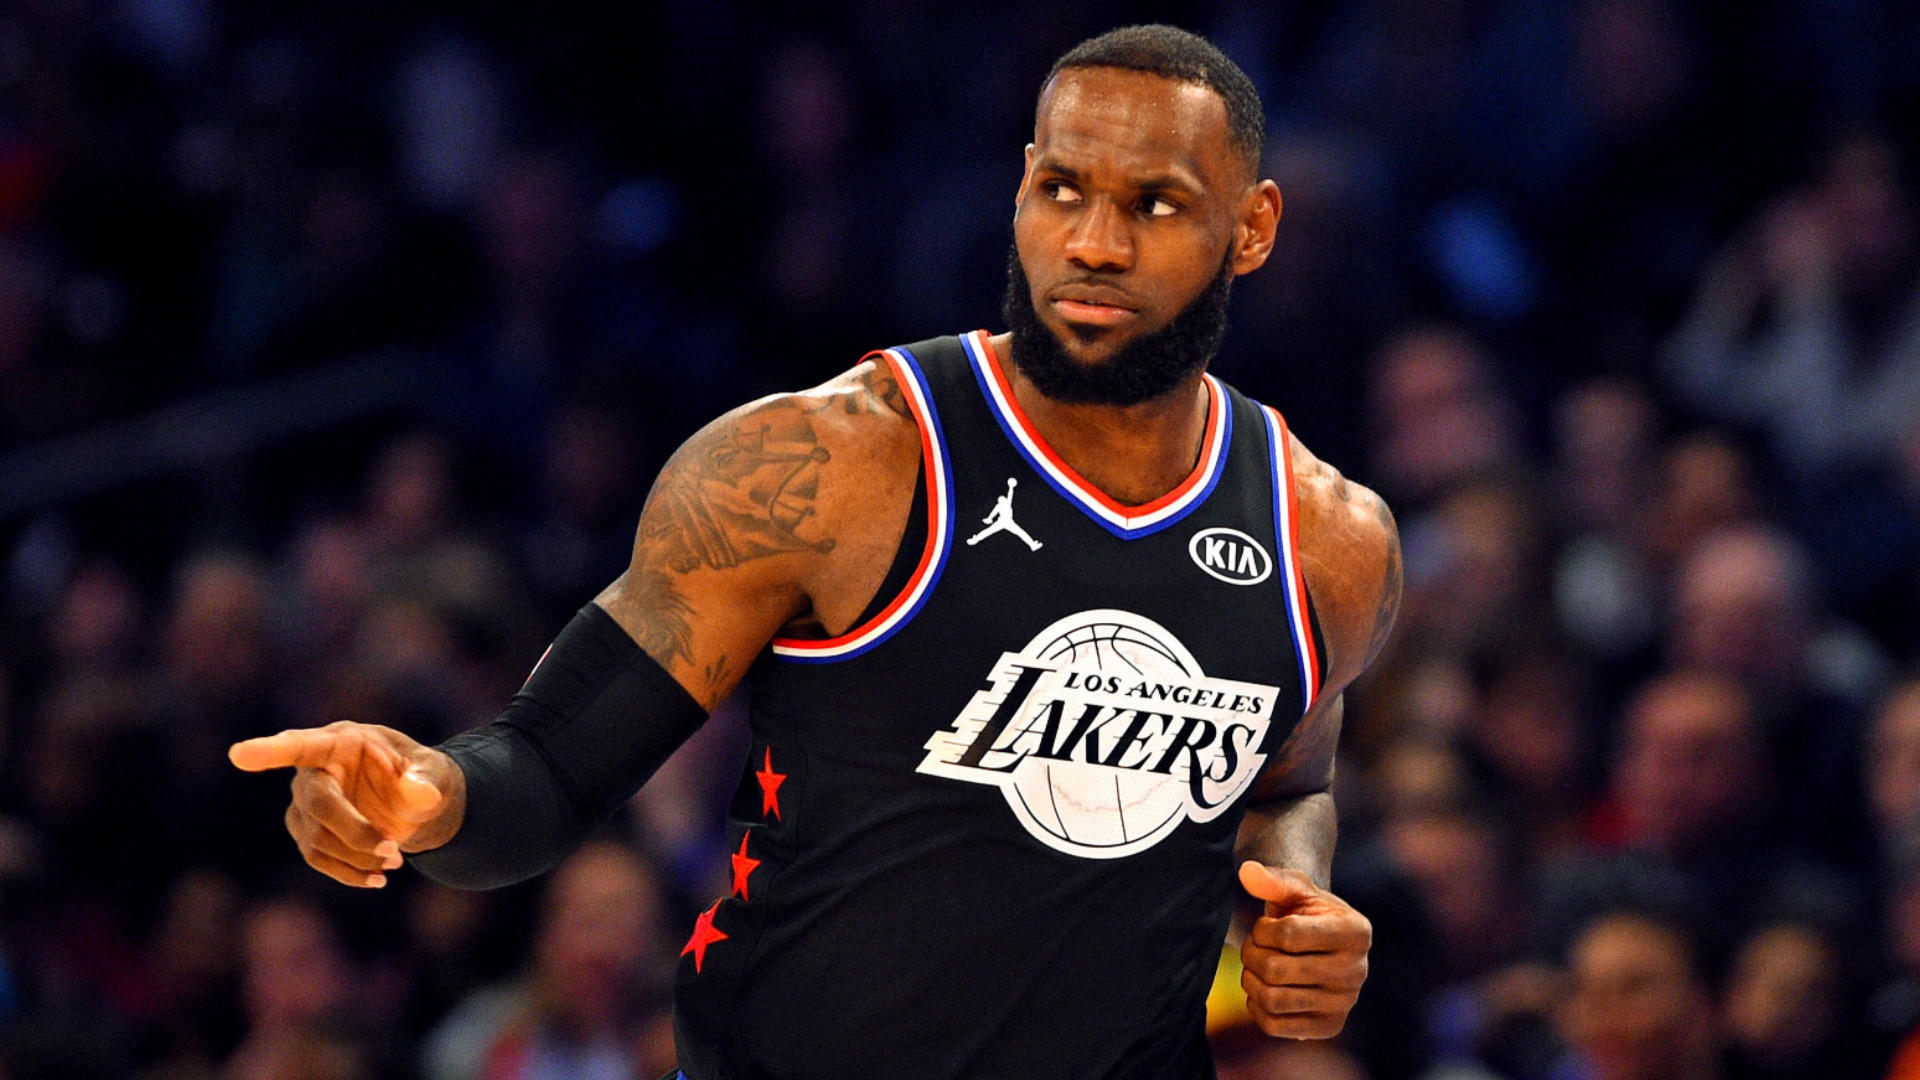 NBA All-Star Game 2019 results, highlights: Team LeBron rallies from 20-point deficit to sink Team Giannis